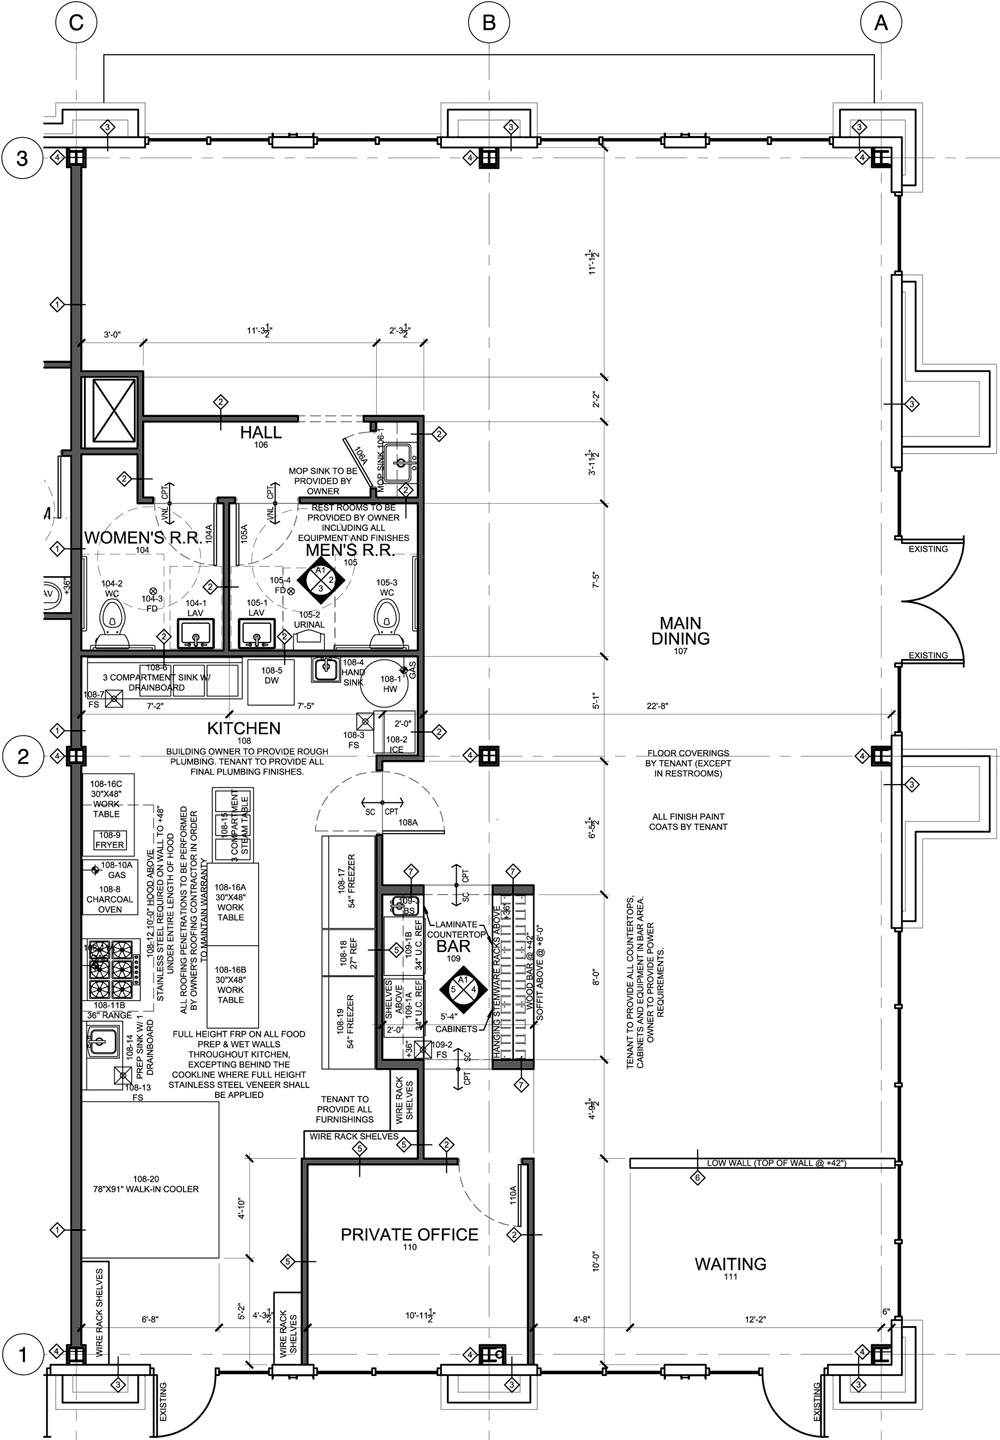 restaurant floor plan for tenant improvement  u2013 taste of